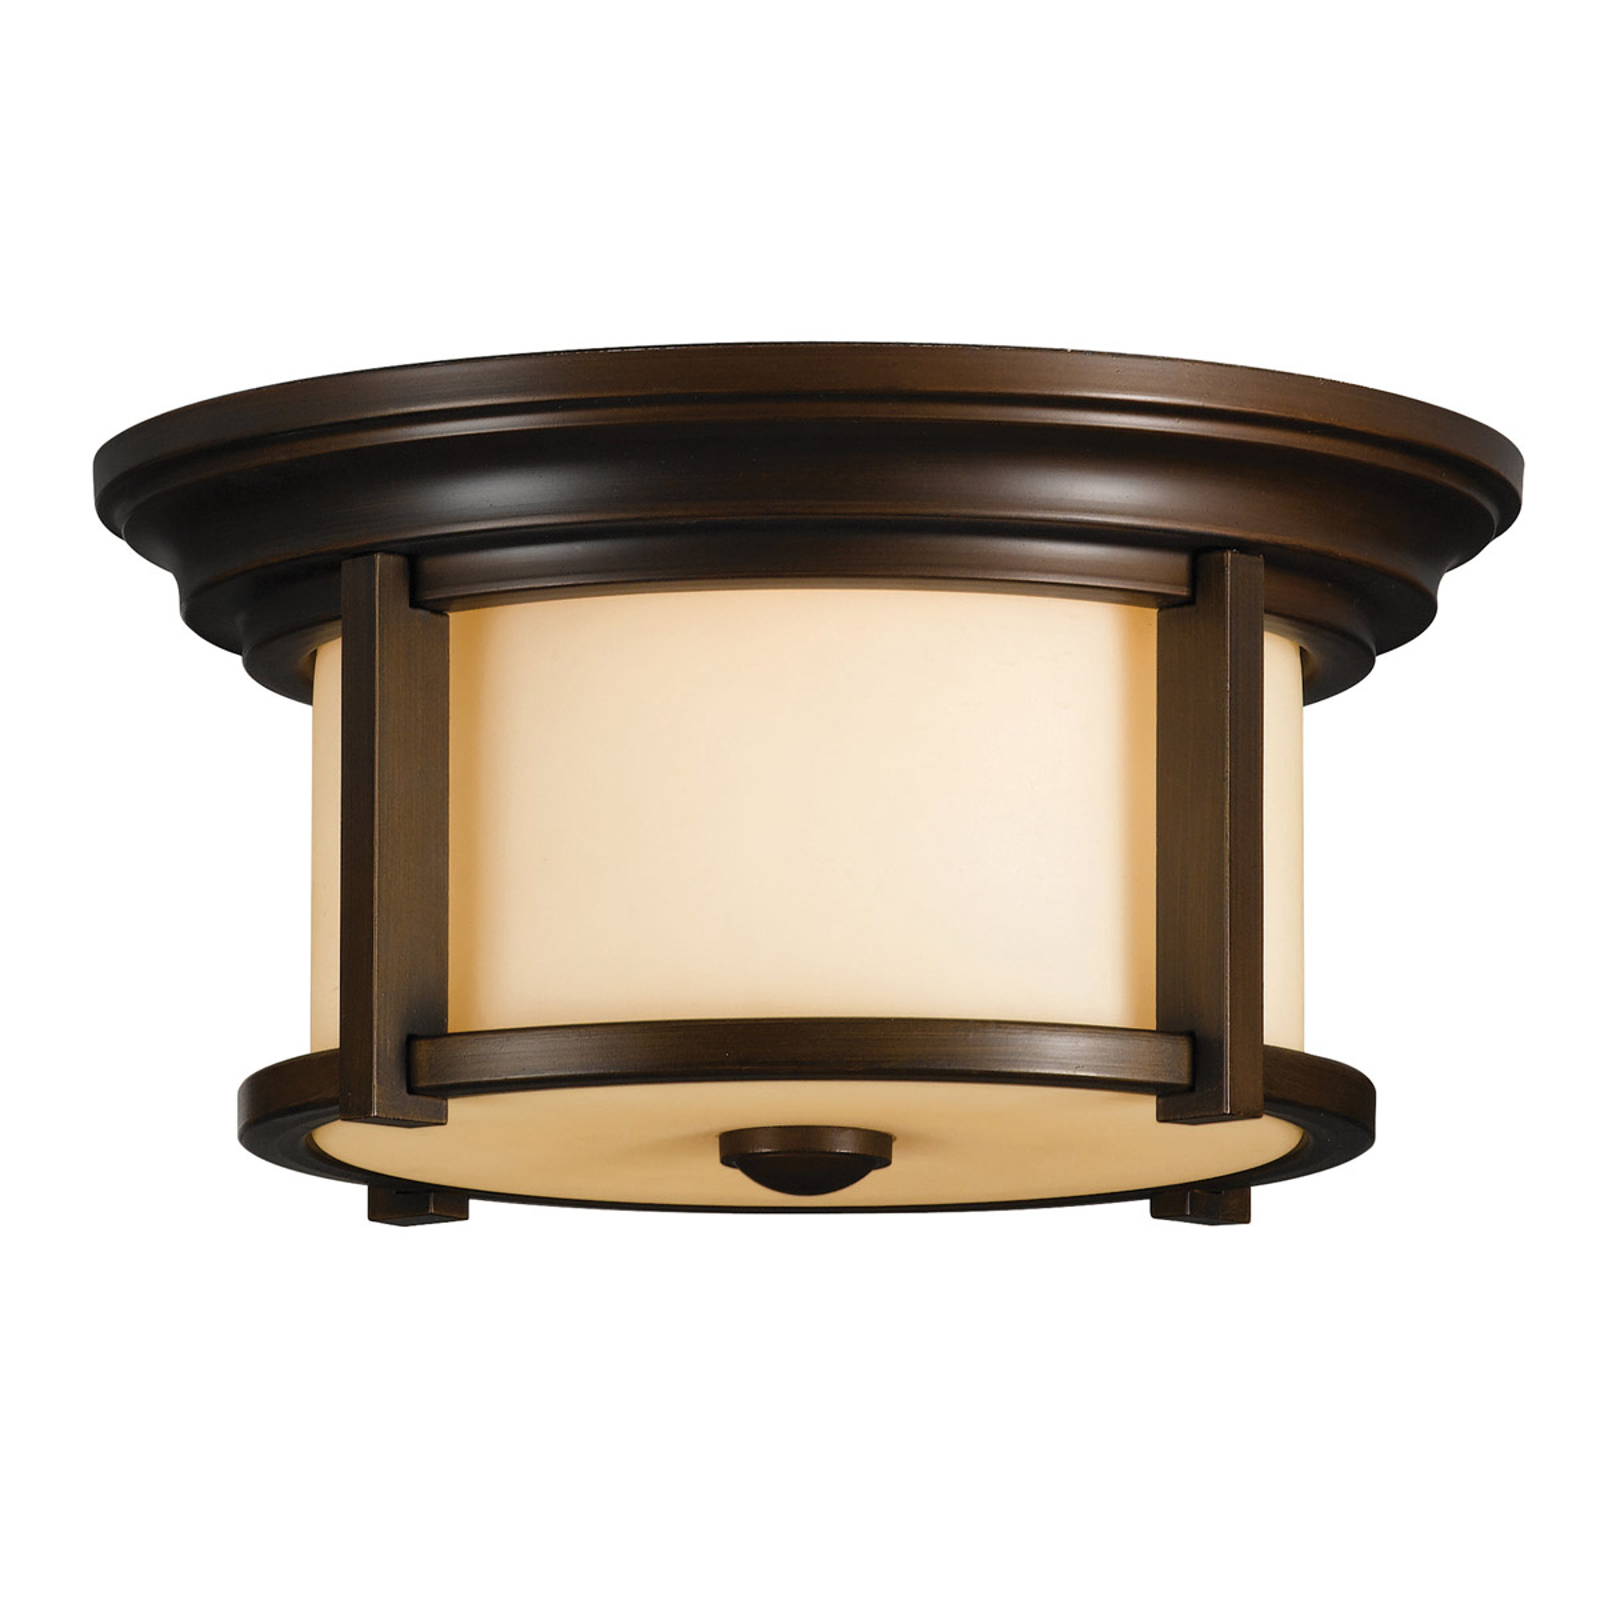 Versatile outdoor ceiling lamp Merrill_3048369_1